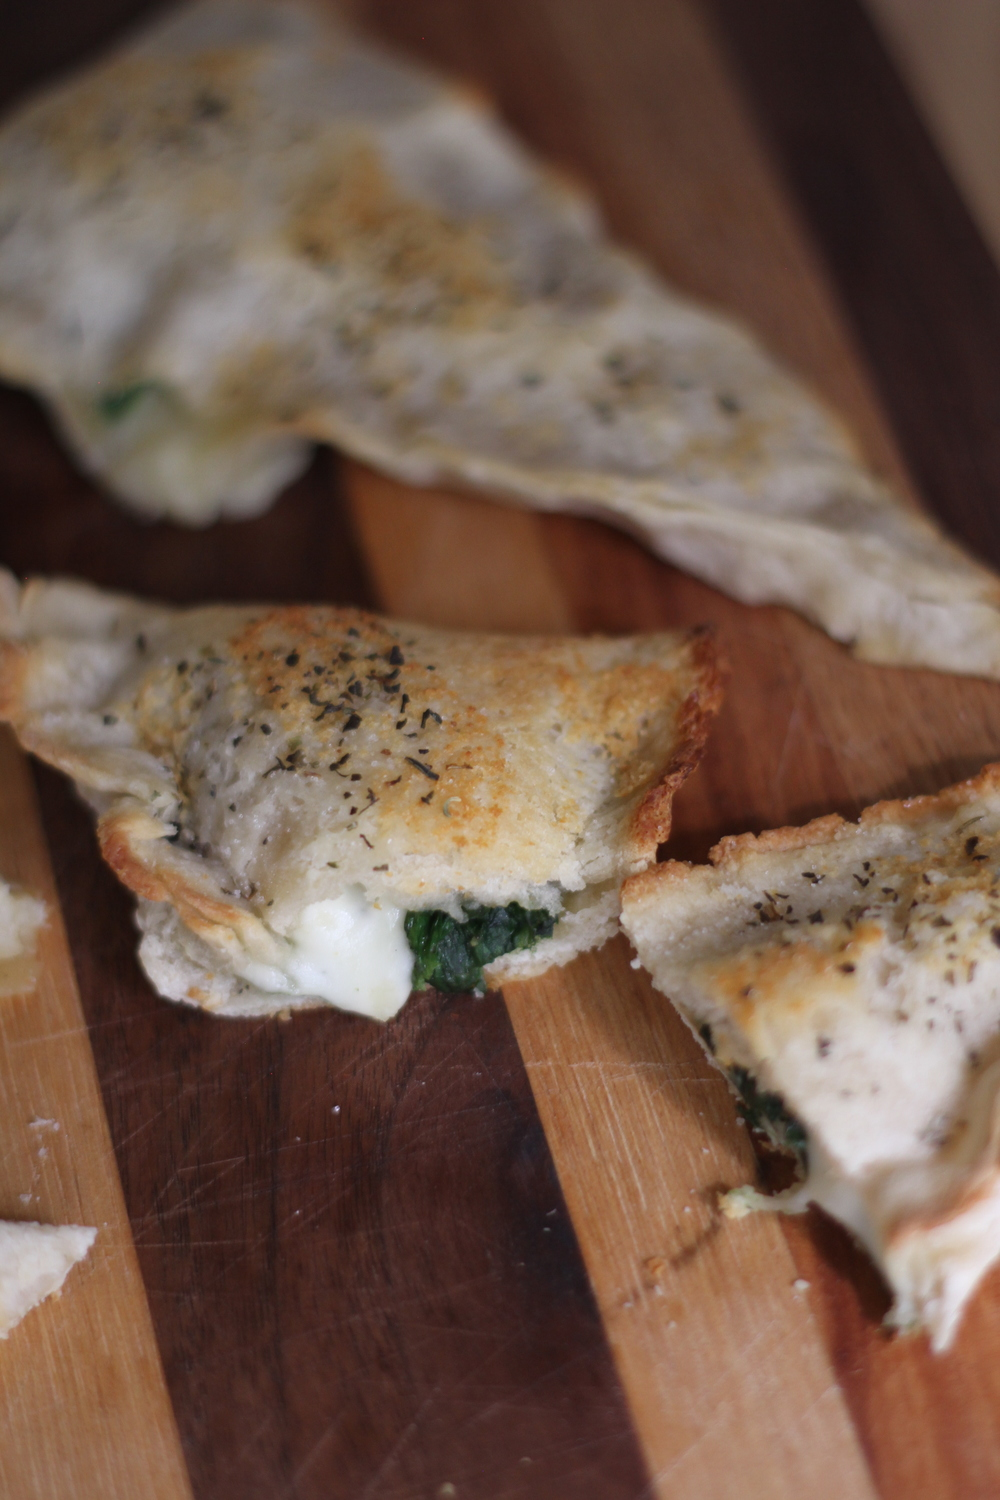 Garlic spinach and ooey gooey mozzarella! Delicious!